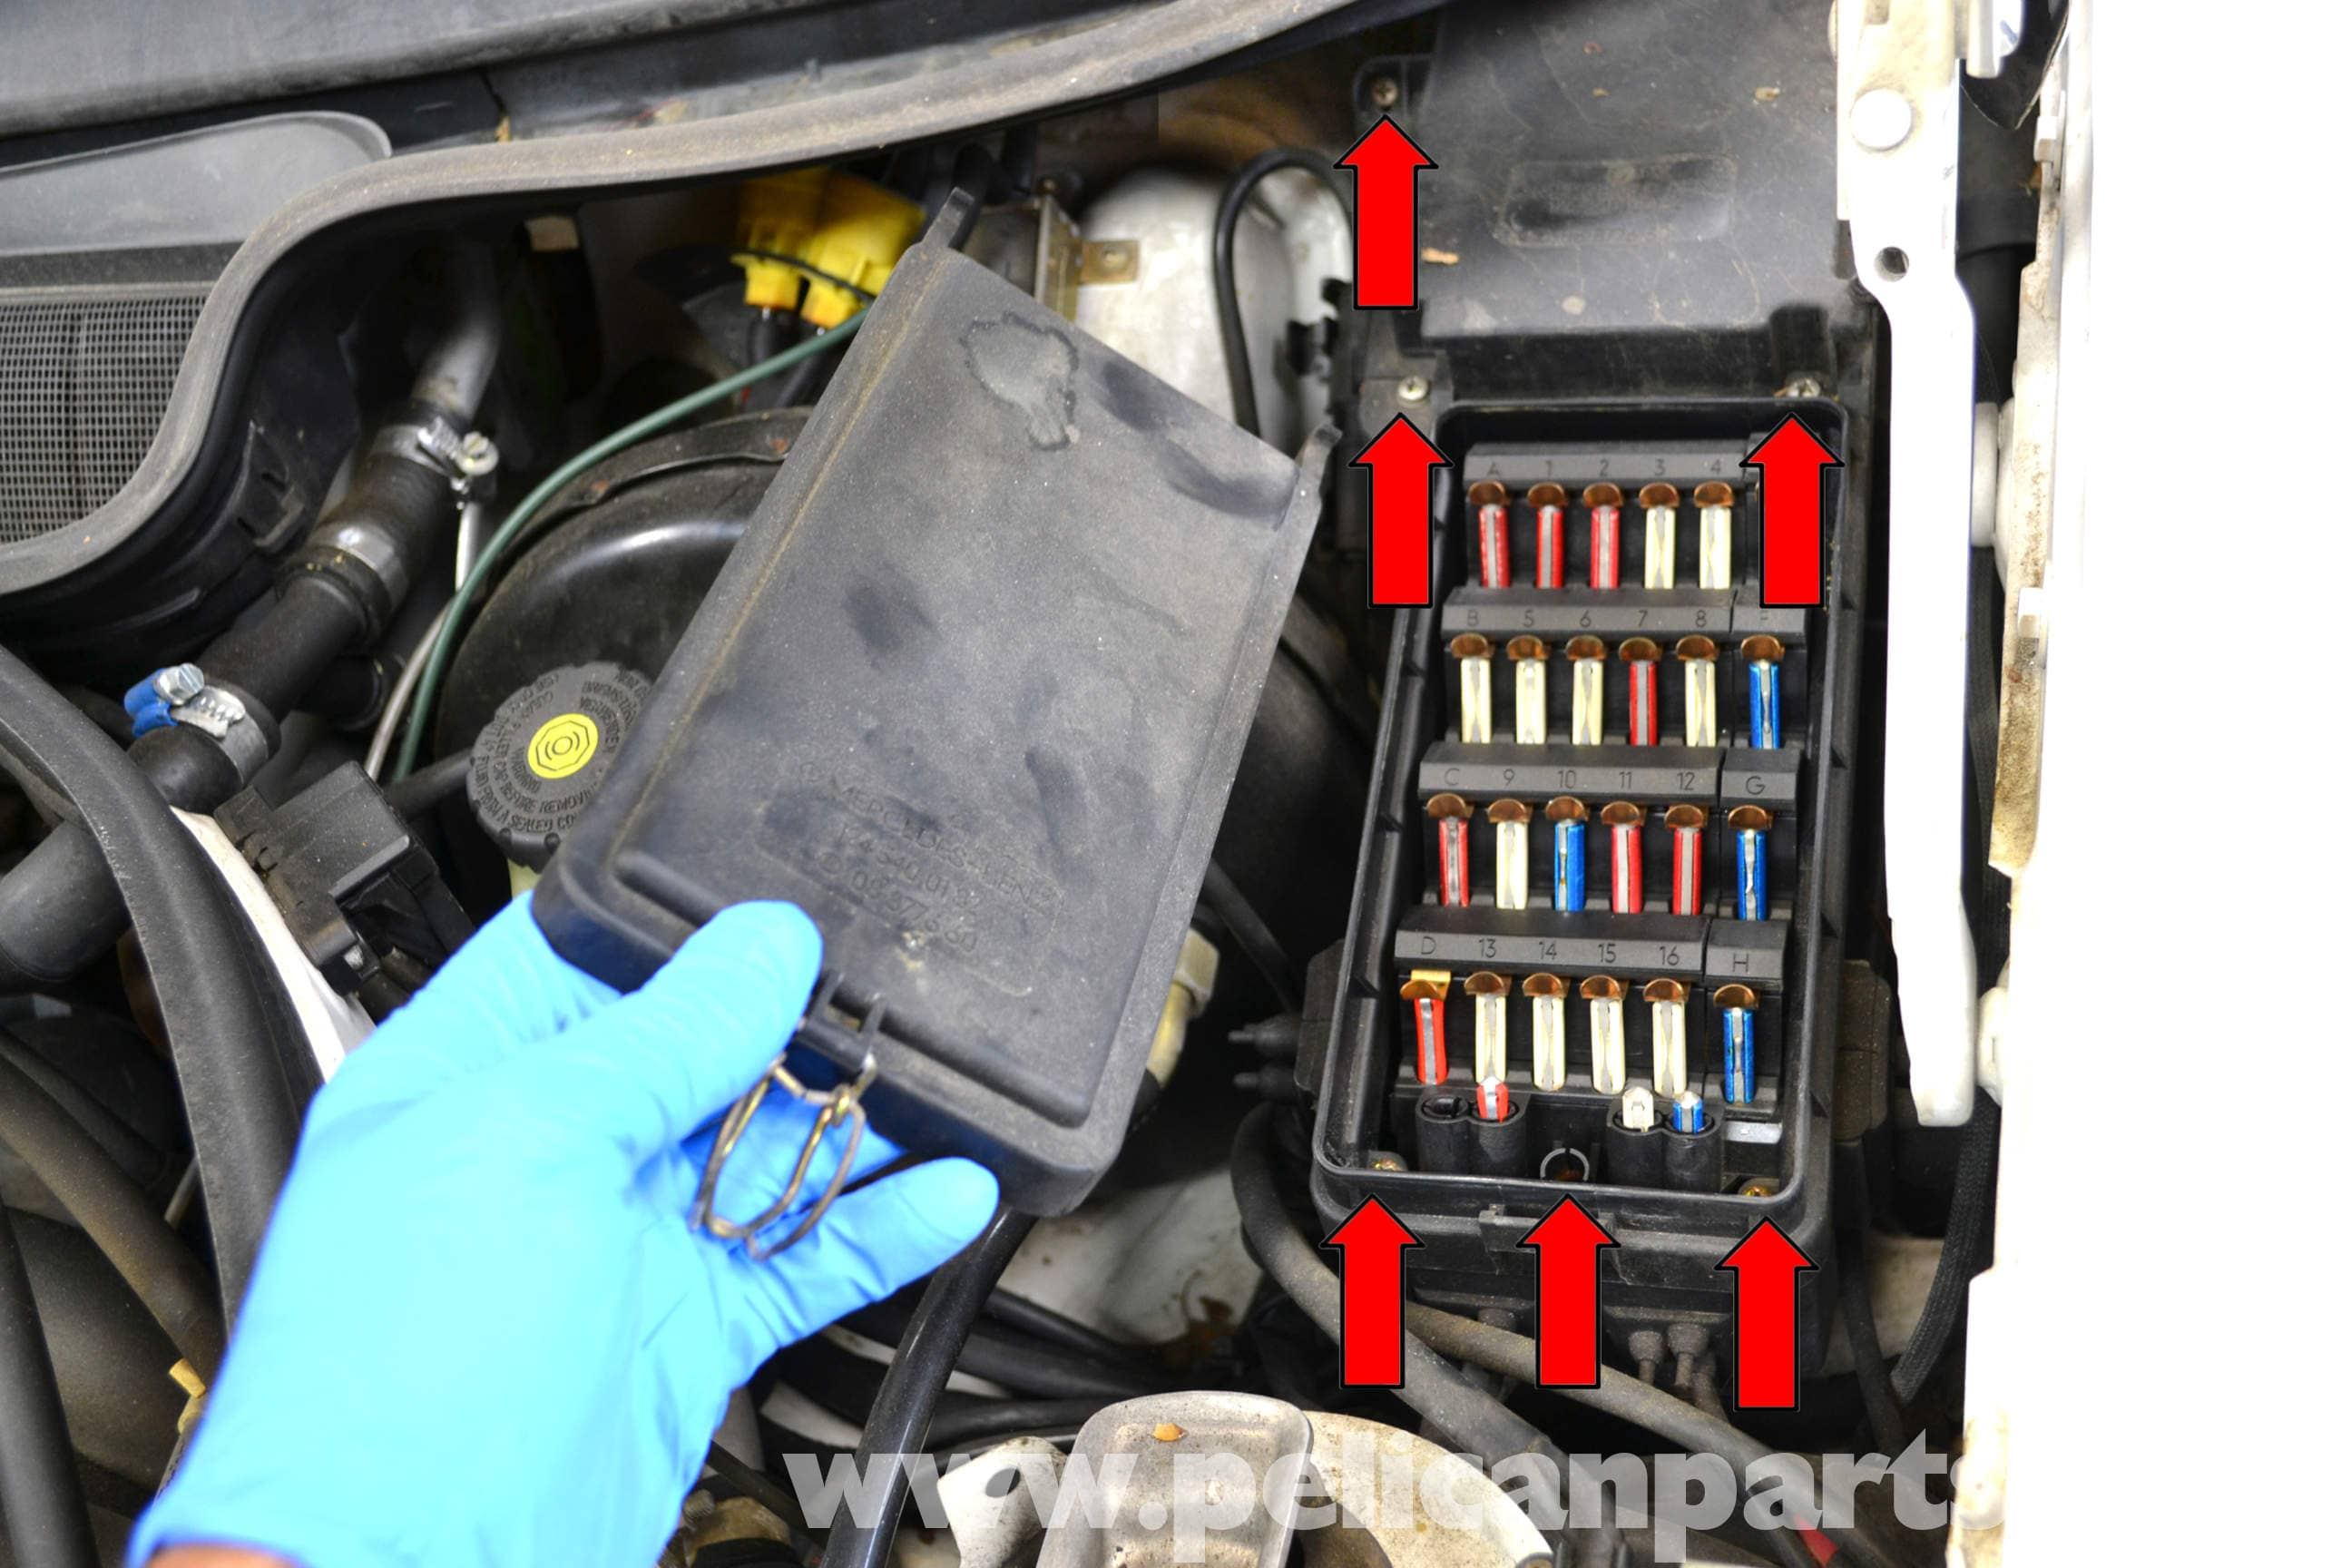 Mercedes Benz W124 Outside Air Temperature Sensor Replacement 1986 92 Volvo 940 Fuse Box Location Large Image Extra